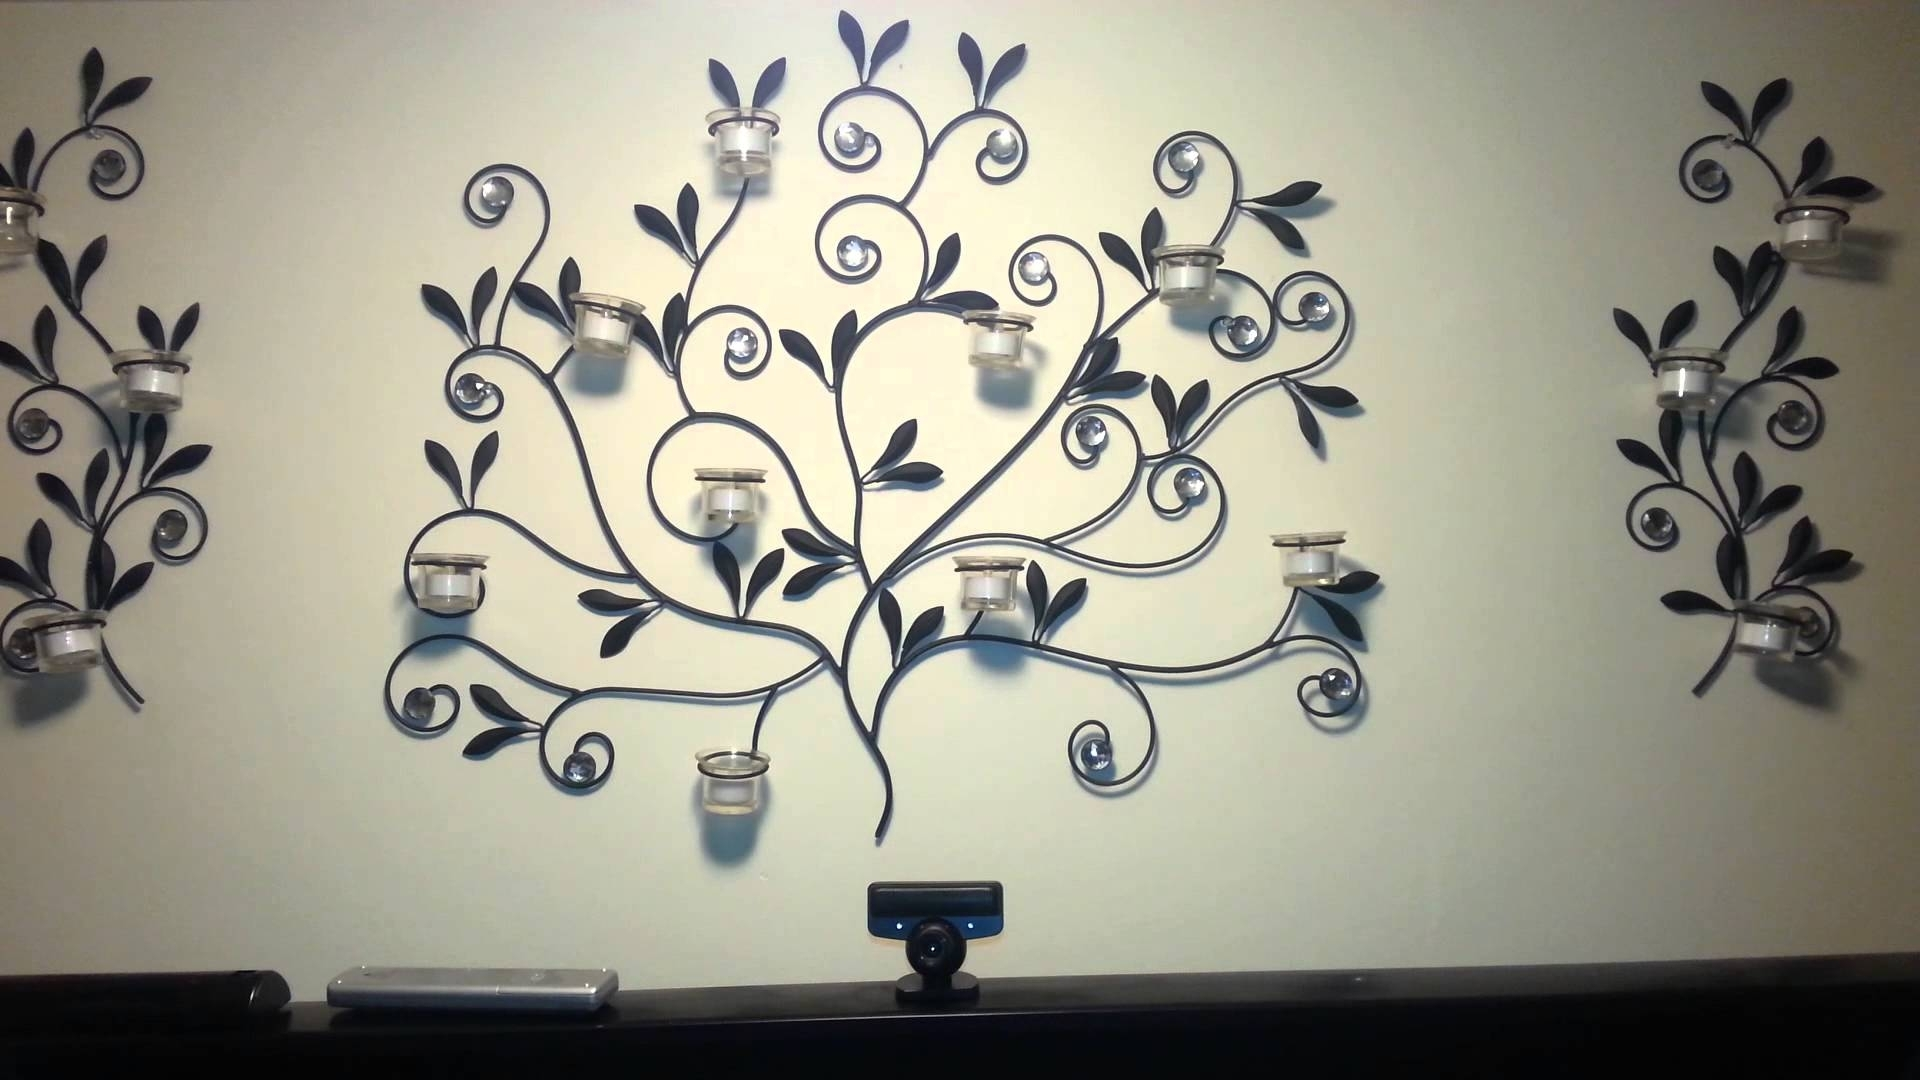 Walmart Metal Wall Art – Youtube Pertaining To Recent Walmart Wall Art (View 19 of 20)